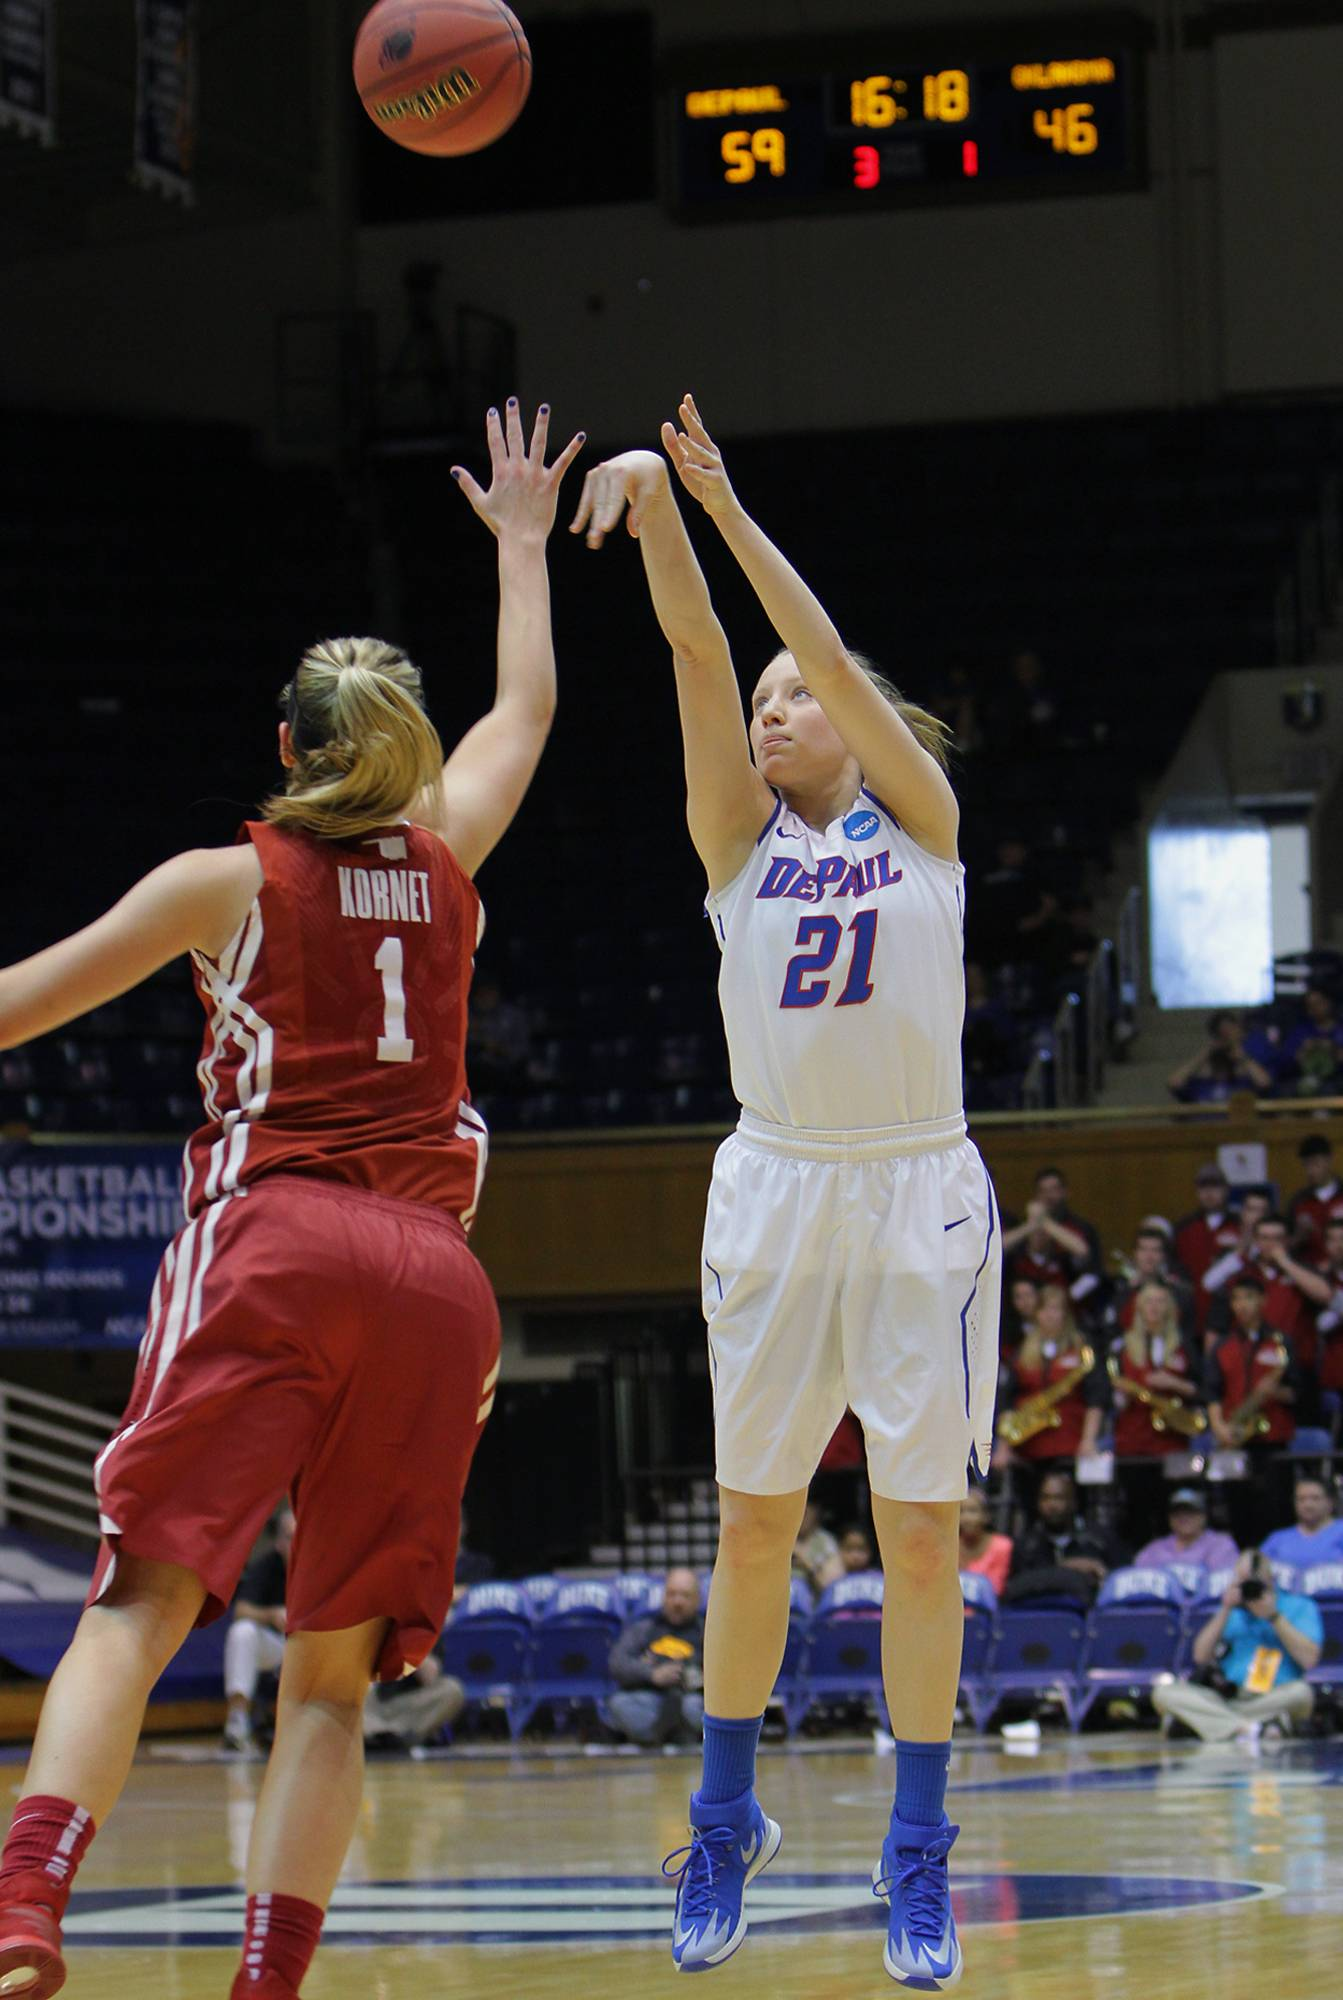 DePaul's Megan Rogowski, right, who scored a team-high 24 points, shoots a 3-pointer over Oklahoma's Nicole Kornet during the second half of a first-round game at the NCAA basketball tournament in Durham, N.C., Saturday, March 22, 2014.  DePaul won 104-100.